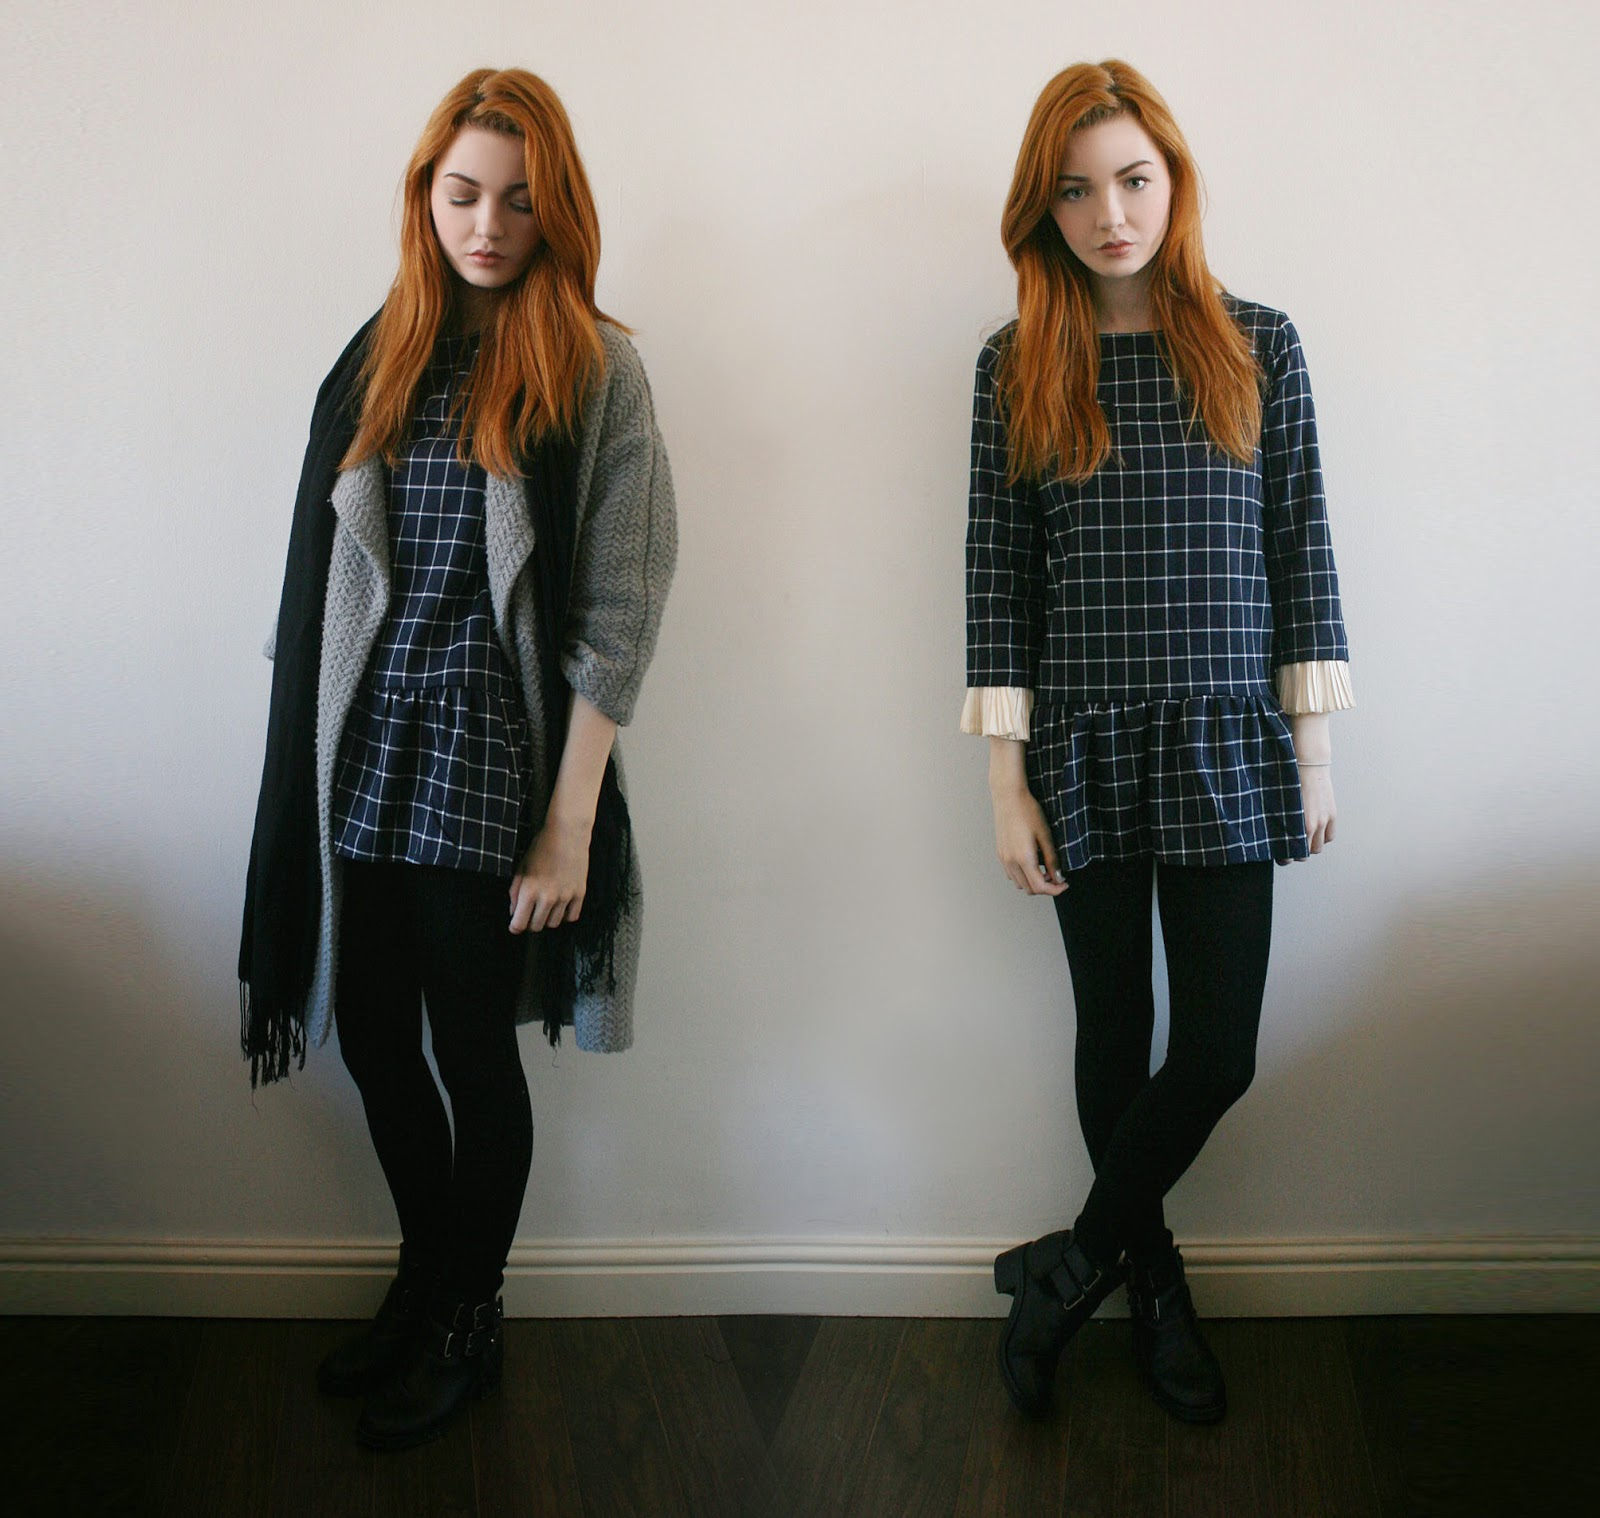 cb5ff03e3e personal style Archives - Page 8 of 29 - Hannah Louise Fashion